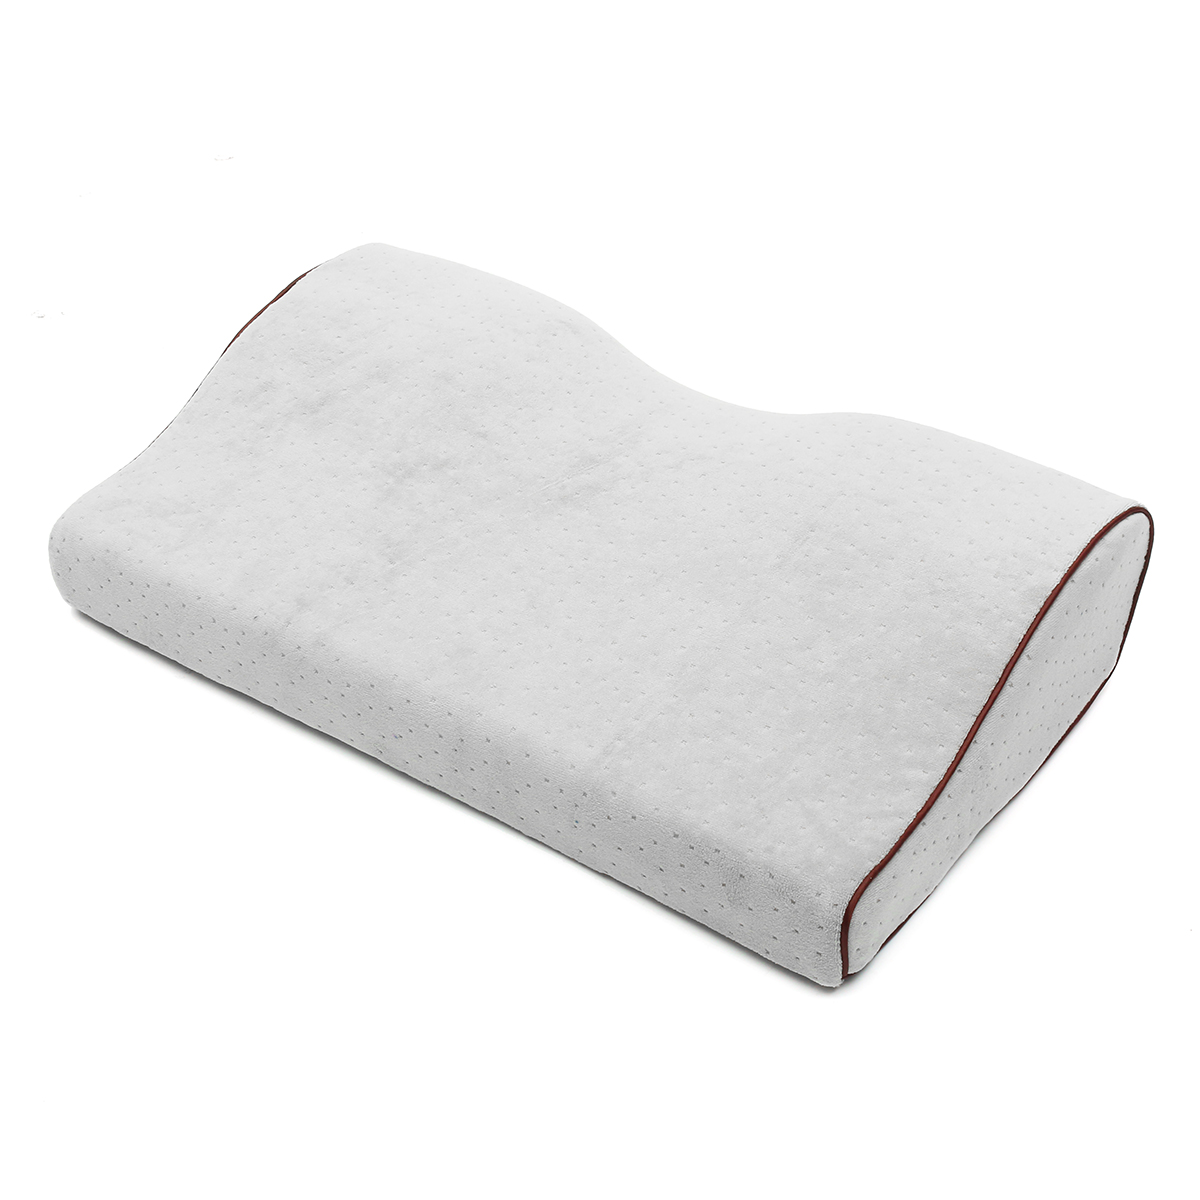 Professional Slow Rebound Memory Pillow Outdoor Travelling Hiking Office Home Relieve Fatigue Extension Pillow